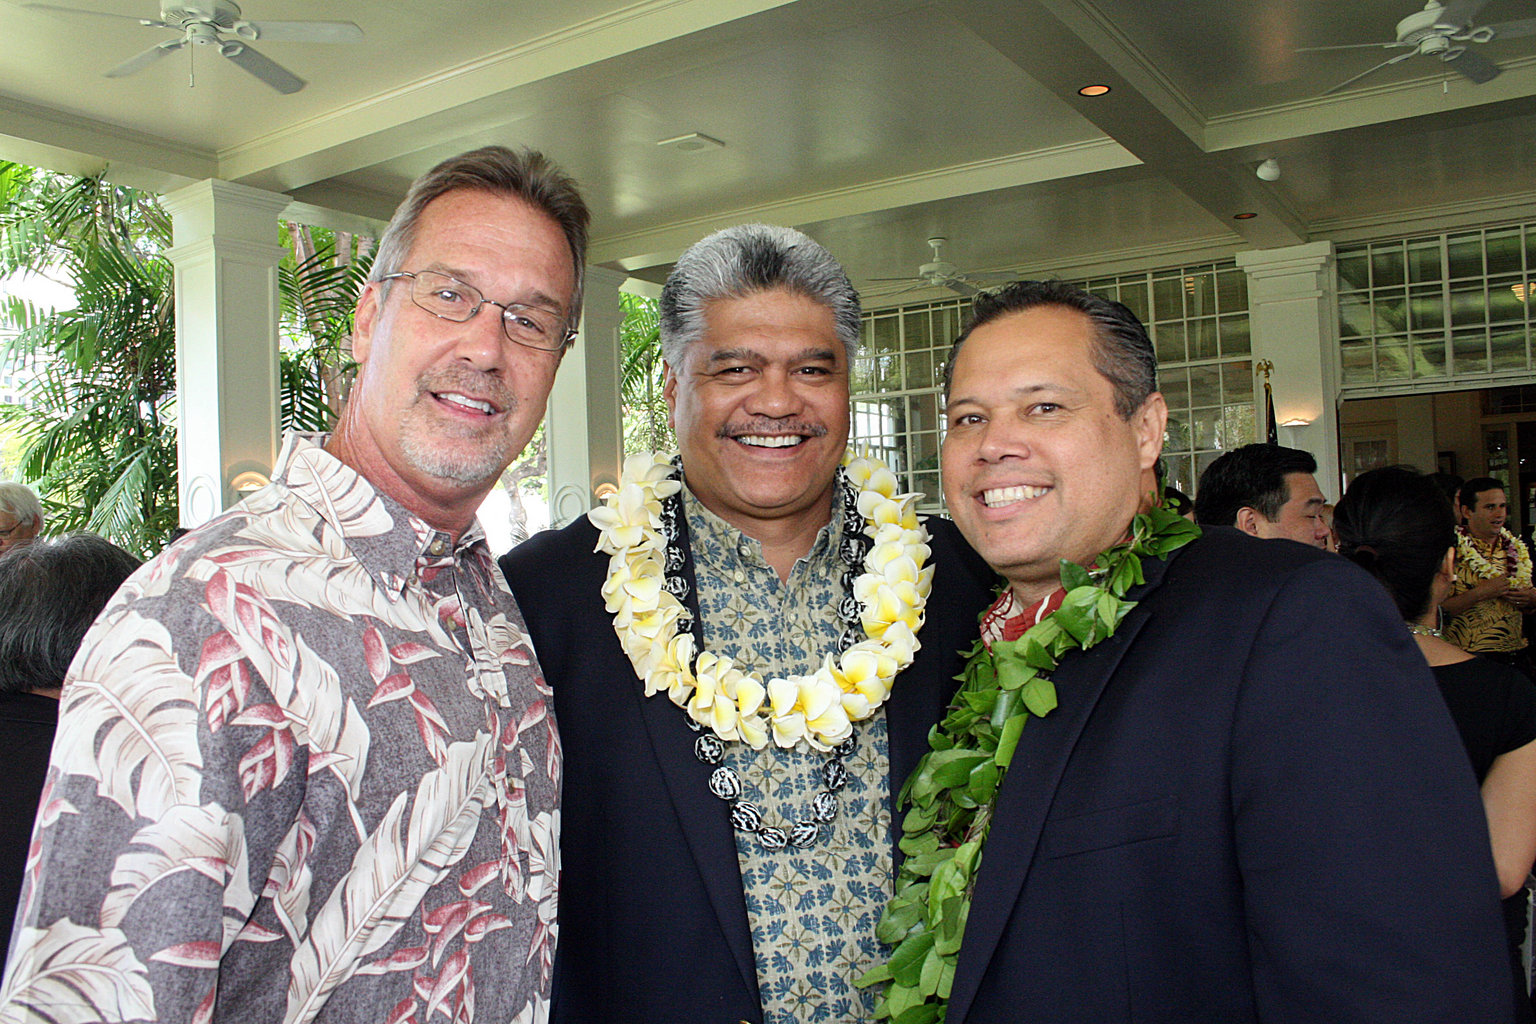 Harvey McInerny, Lunalilo Trustee, Dr. Kamana'opono Crabbe, Office of Hawaiian Affairs CEO, and Alapaki Nahale-a, Chairman, Hawaiian Homes Commission at today's signing of the $200m OHA settlement bill by Governor Abercrombie.